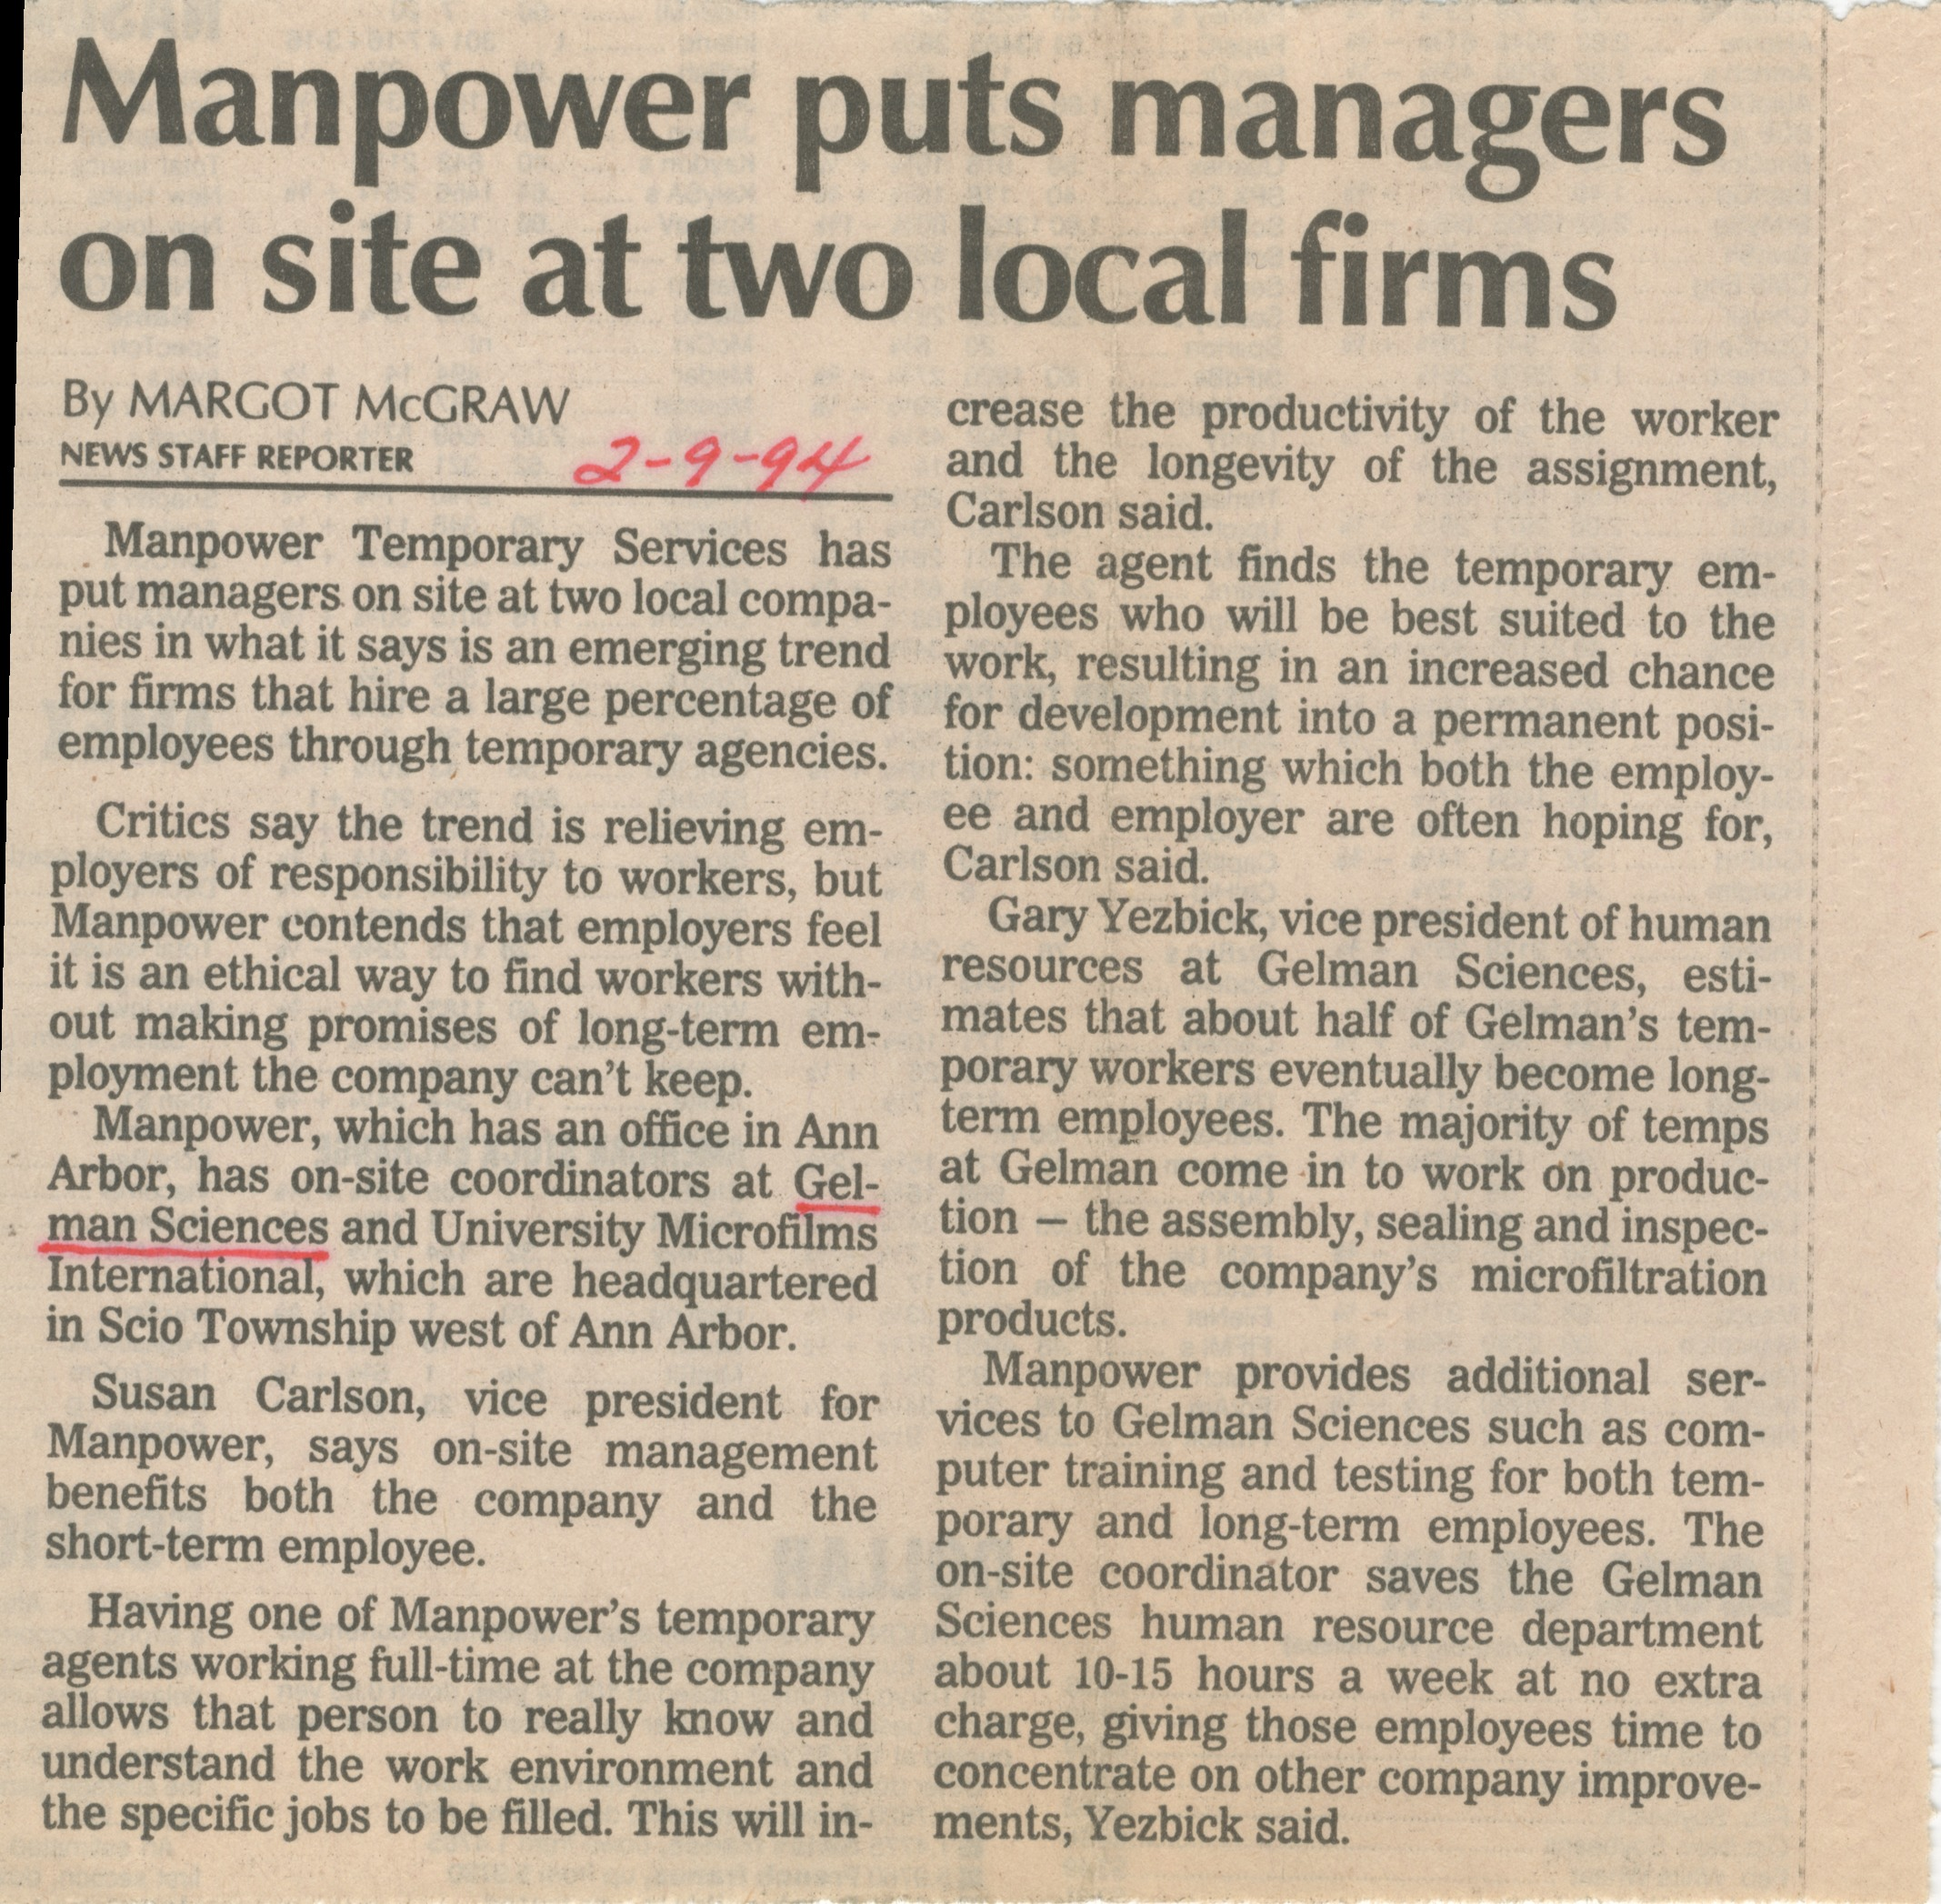 Manpower Puts Managers on Site at Two Local Firms image